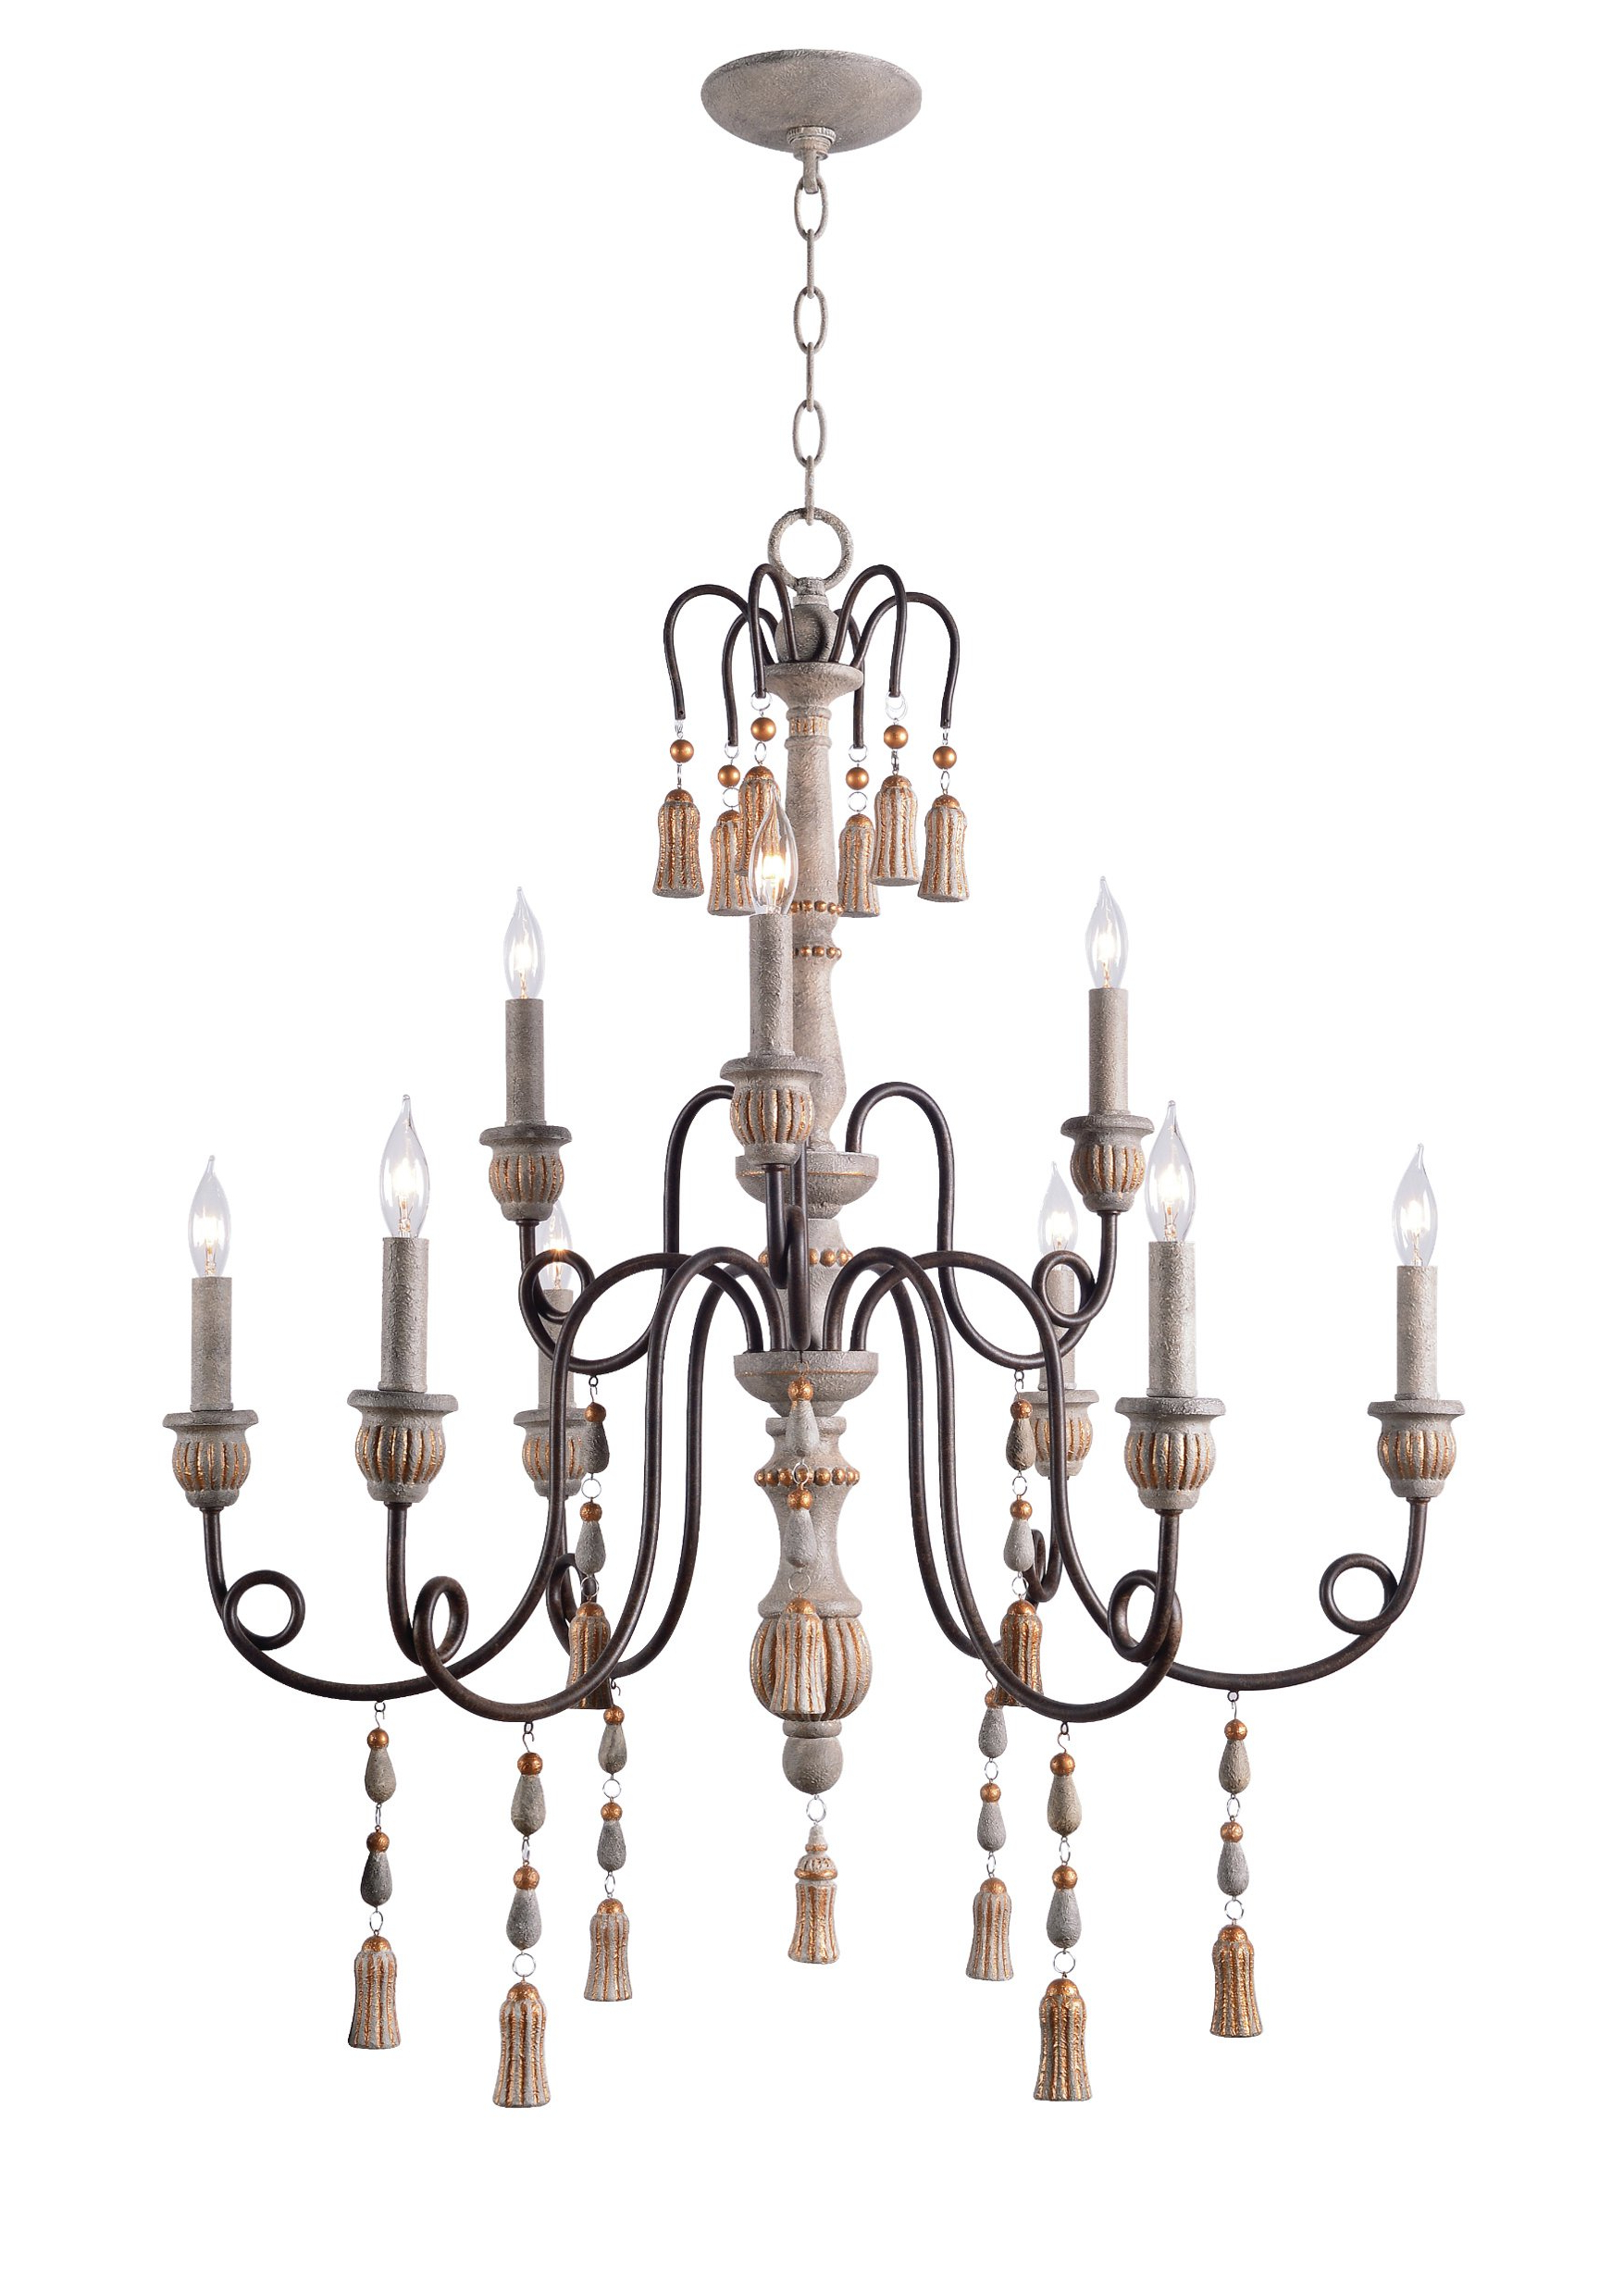 Newest Hassan 9-Light Candle Style Chandelier intended for Bouchette Traditional 6-Light Candle Style Chandeliers